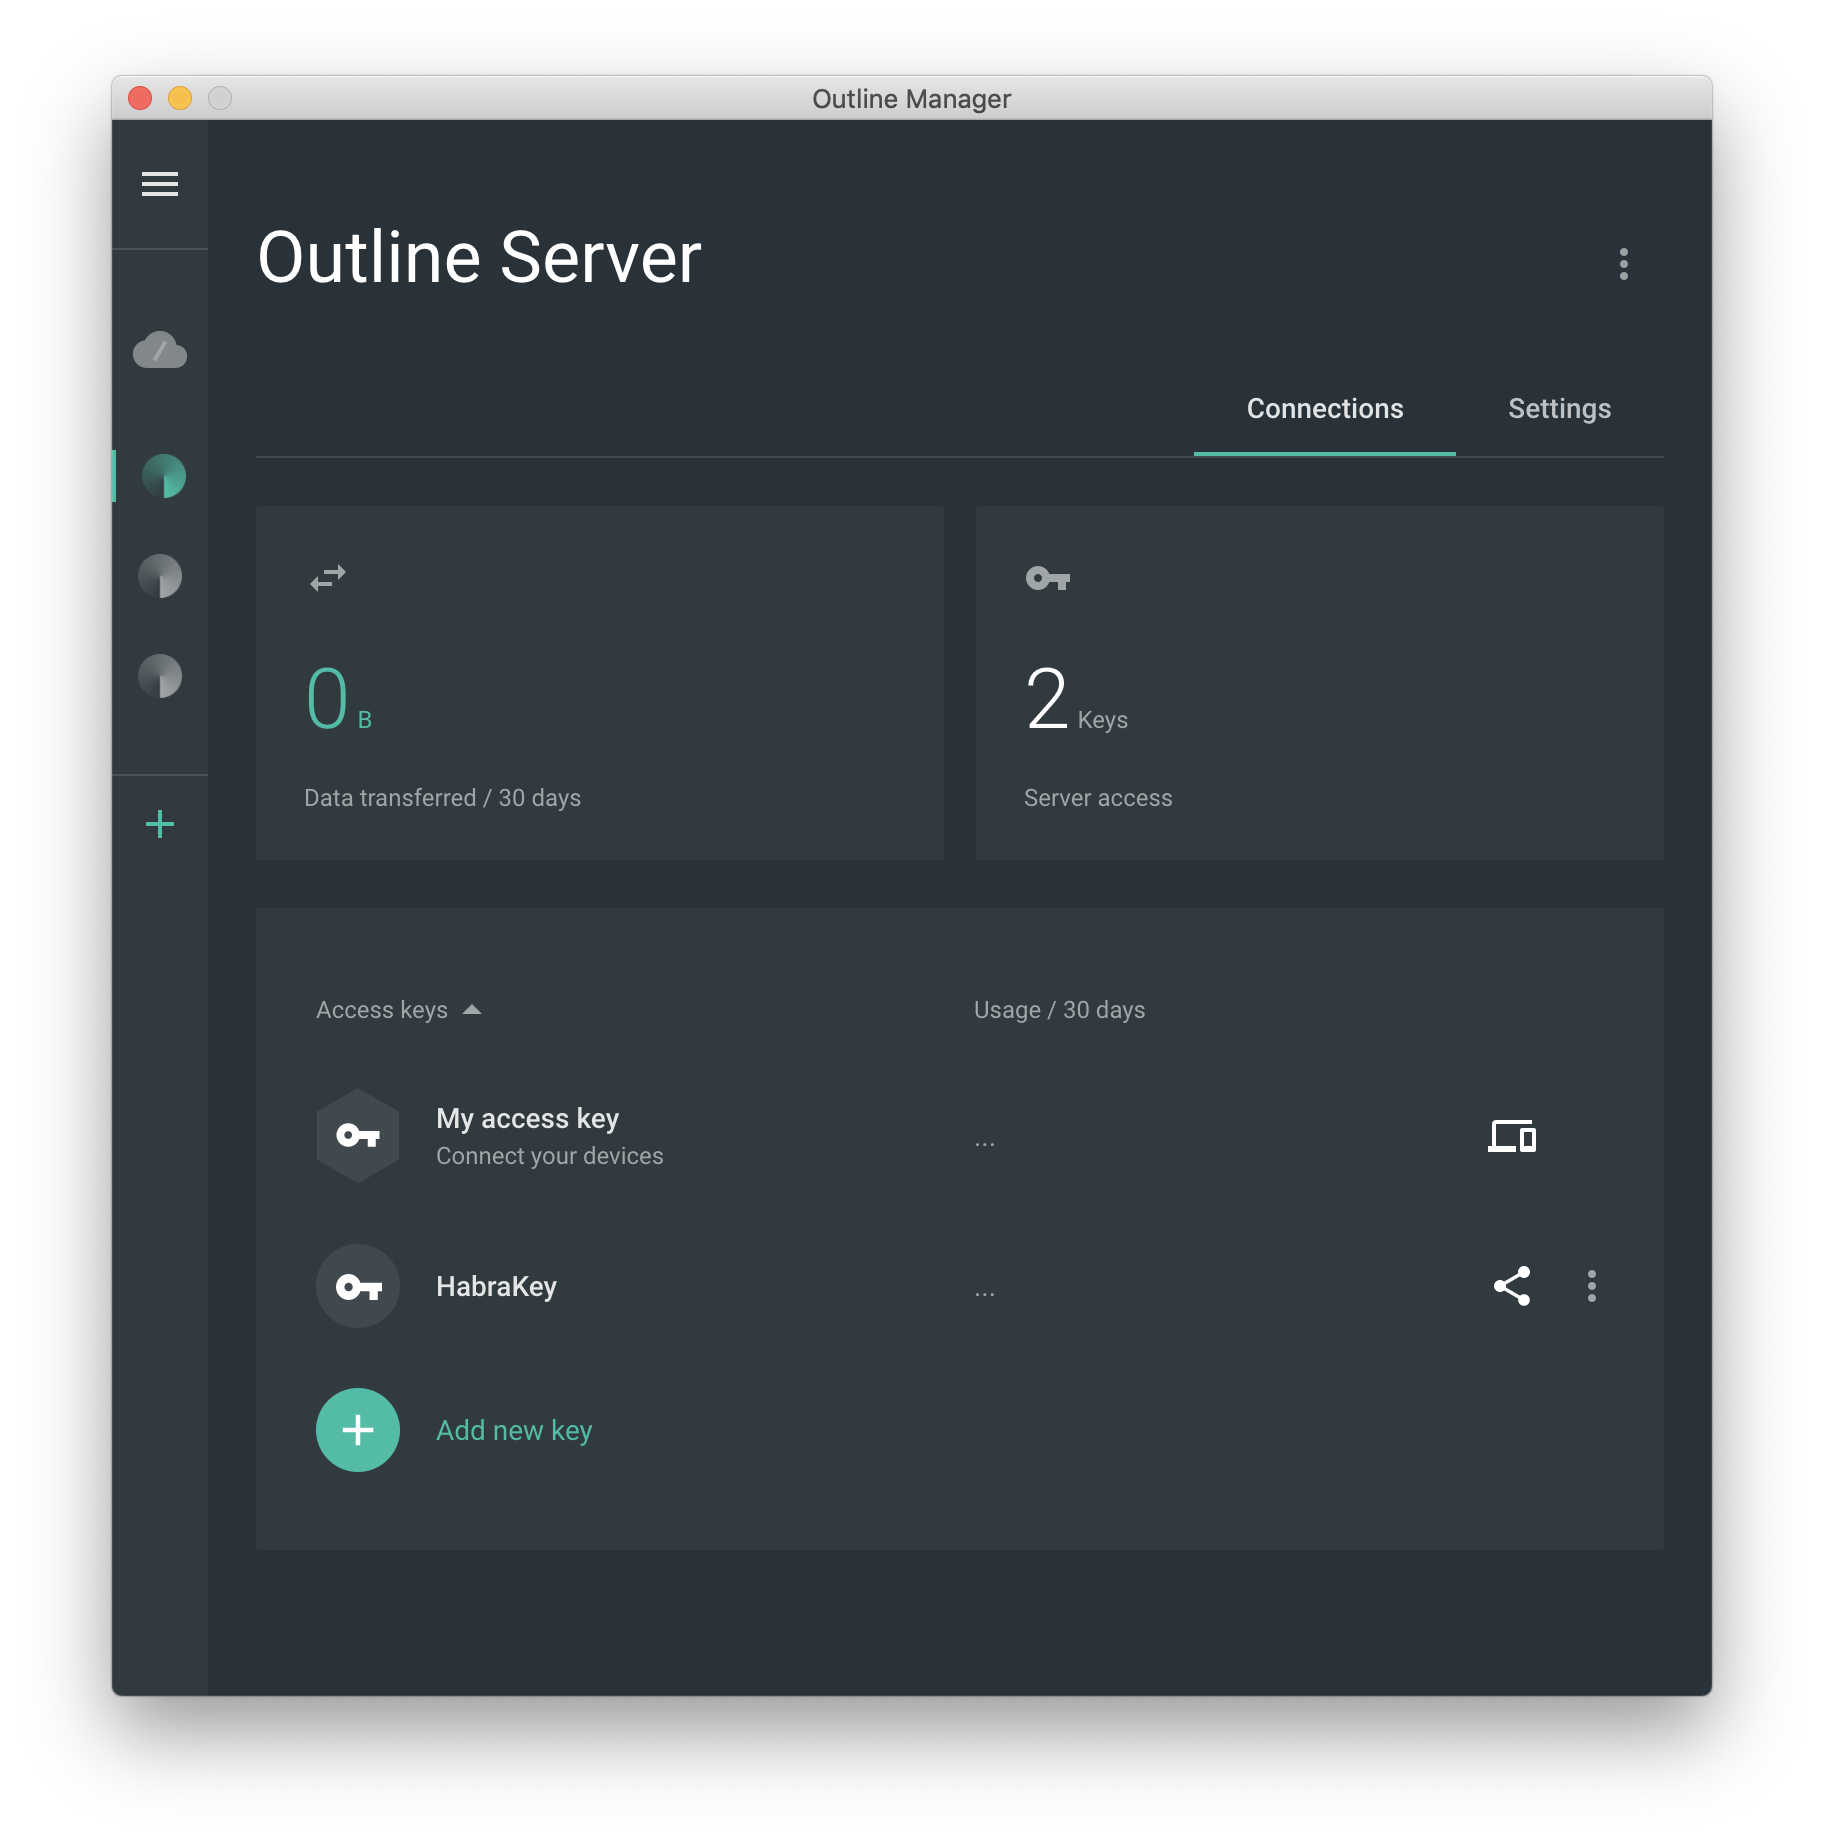 Outline Manager dashboard